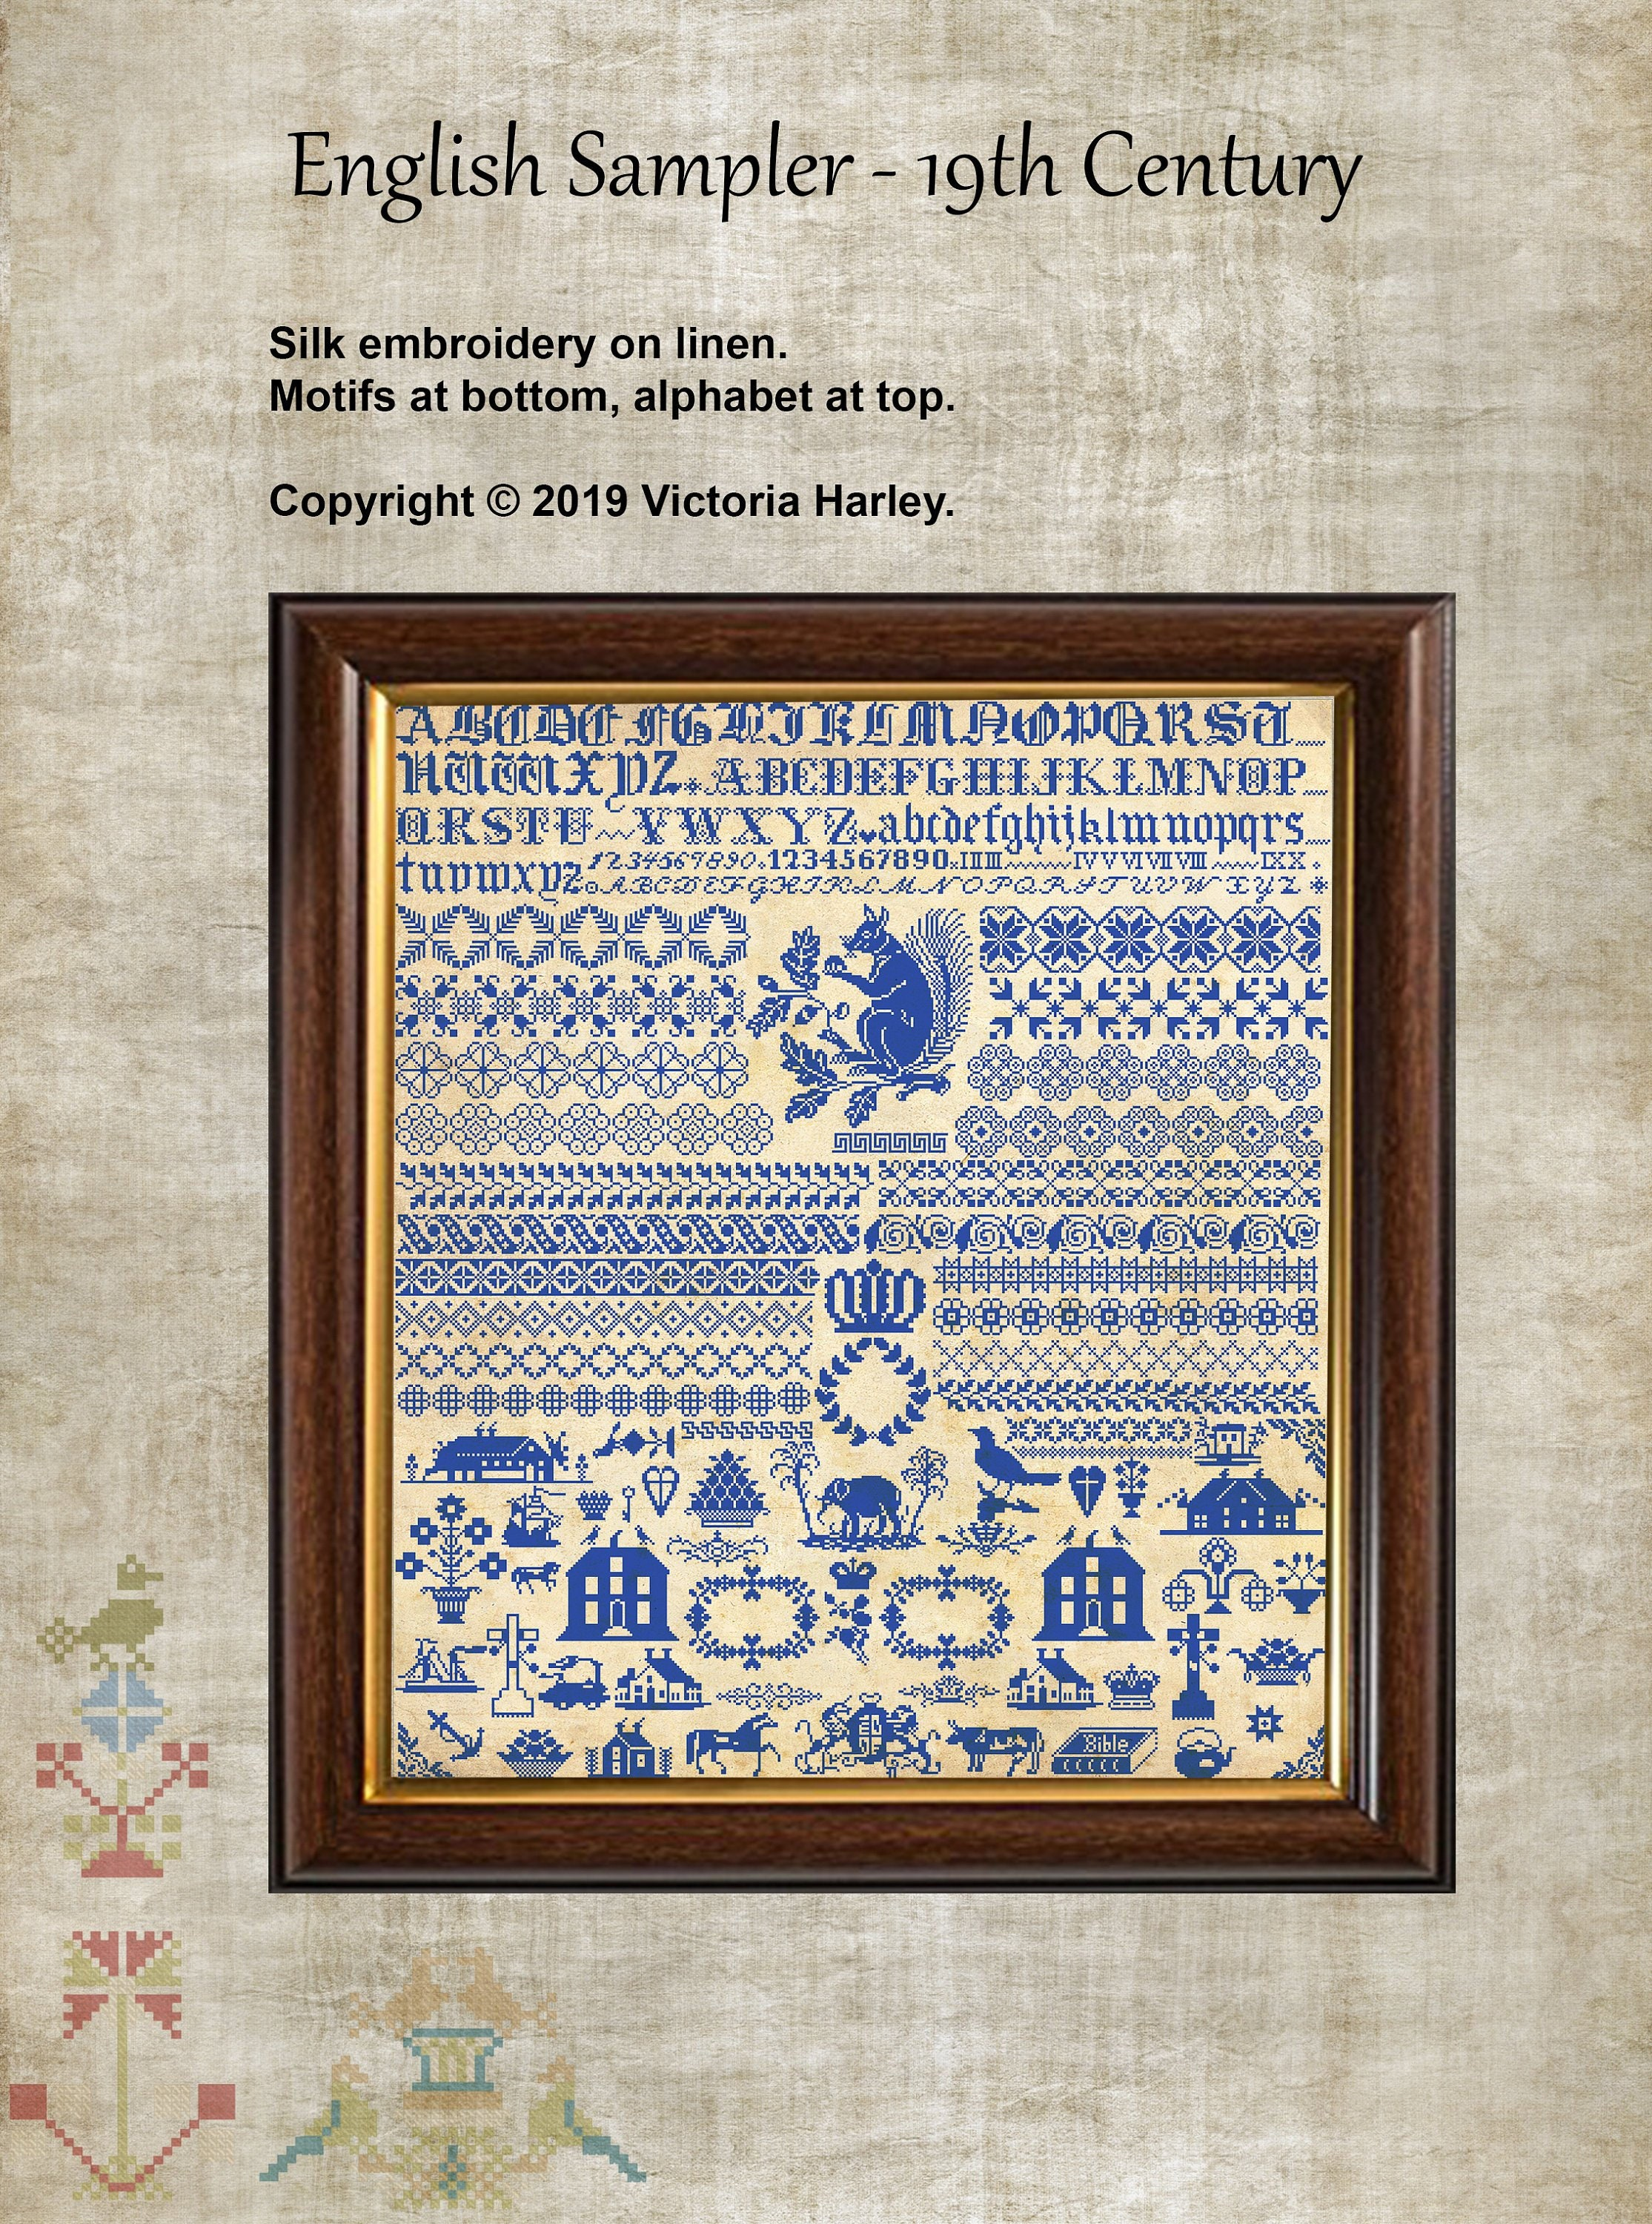 Antique English 19th Century Sampler Reproduction Cross Stitch Counted  Chart PDF Instant Download Unique Easy to Make Vintage English Harley